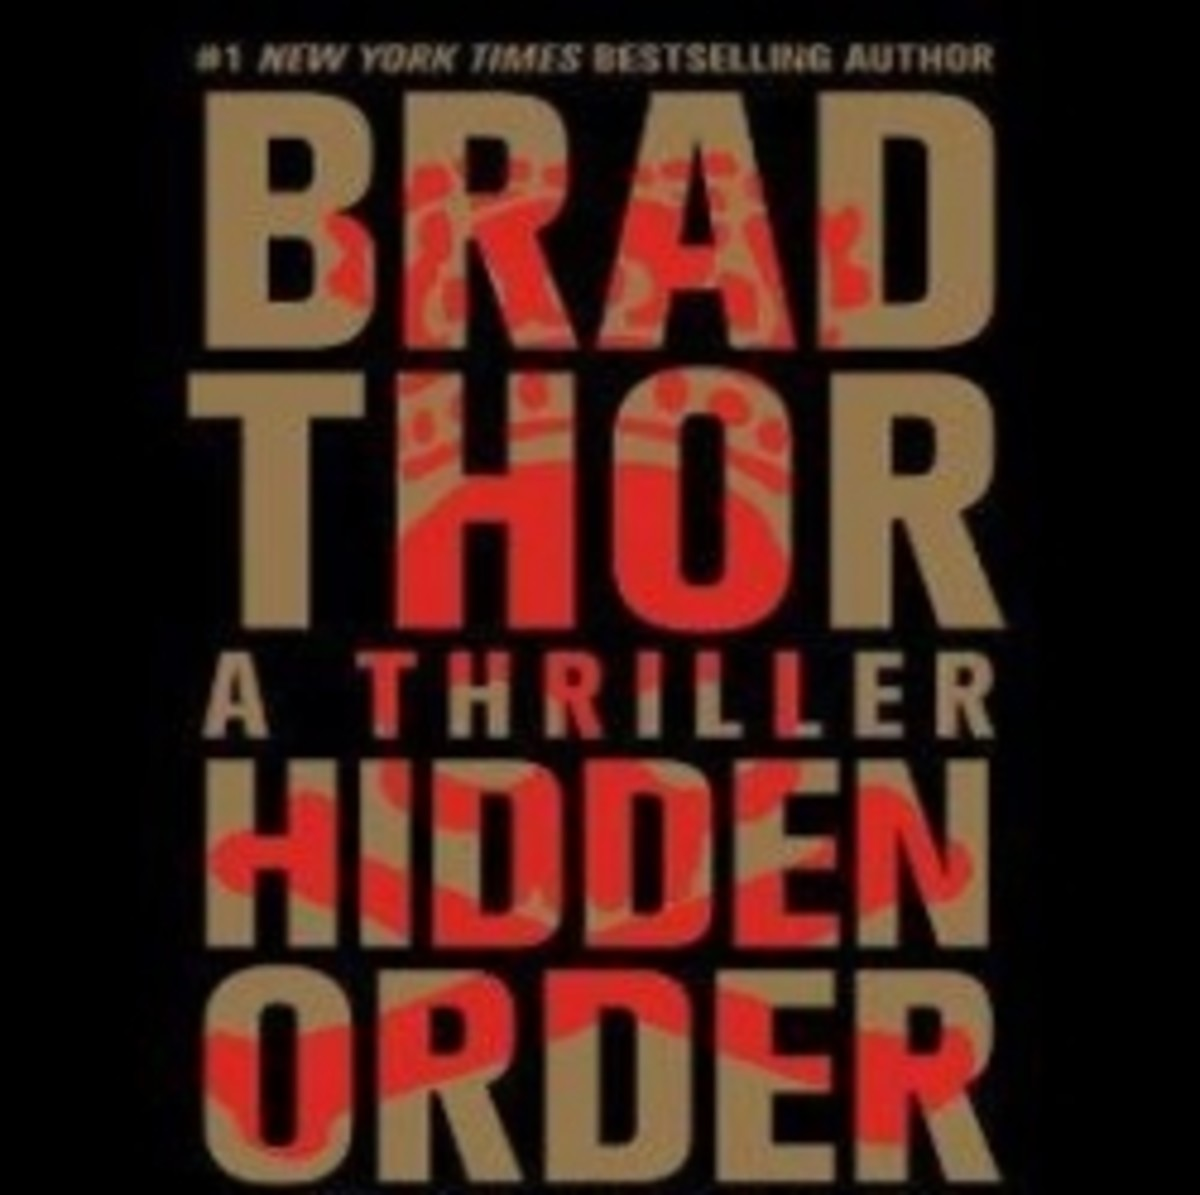 Brad Thor Books In Order Of Reading